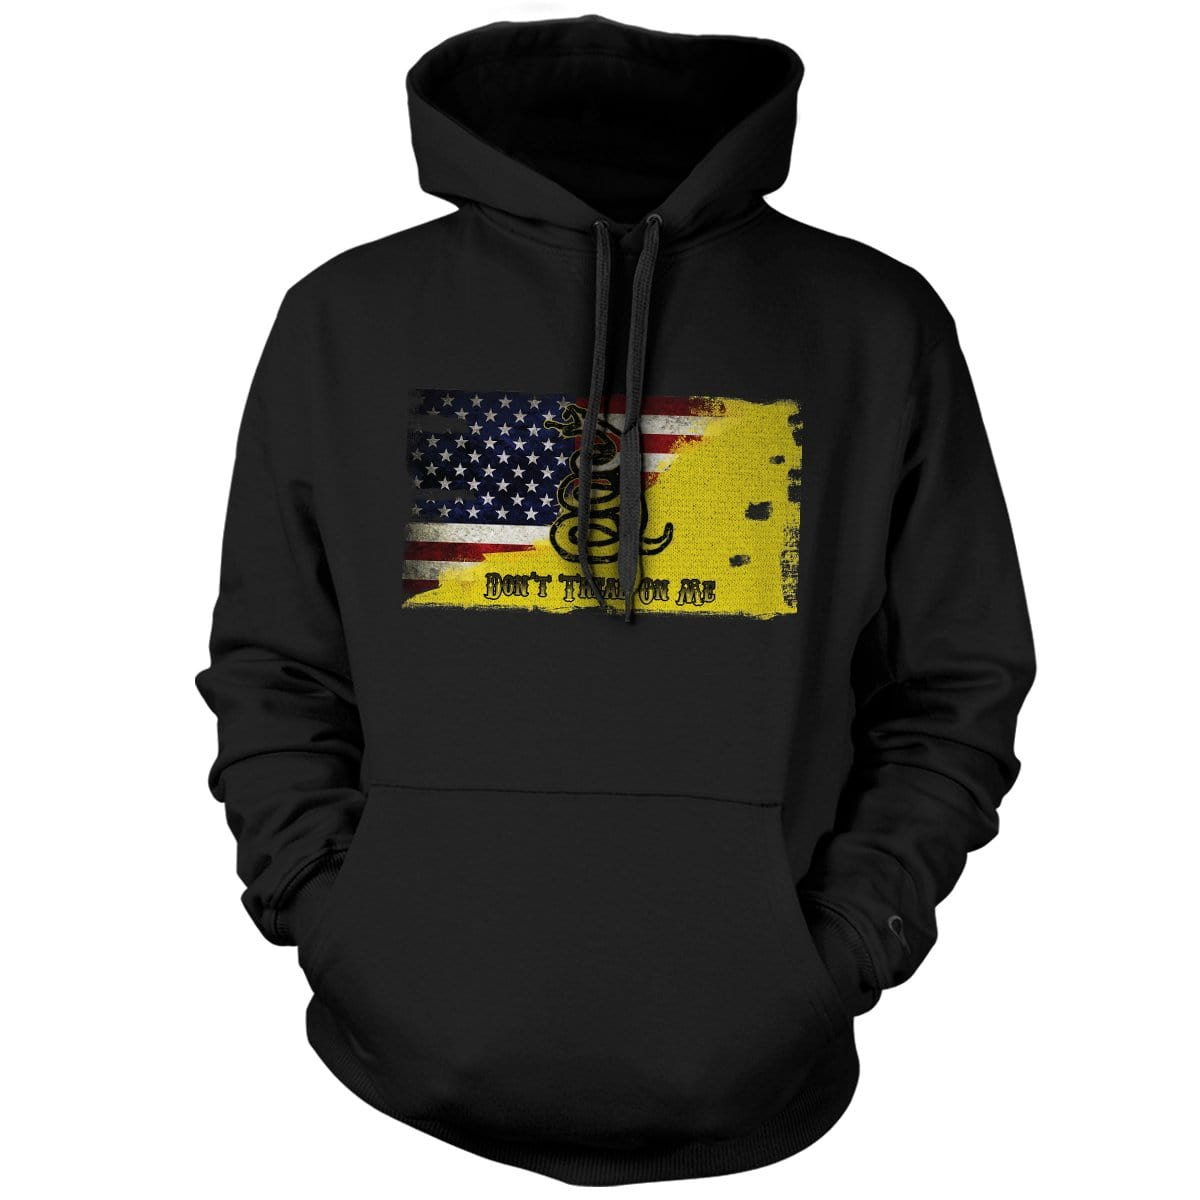 Modern Day Patriot Hoodie - Black - Hoodies - Pipe Hitters Union